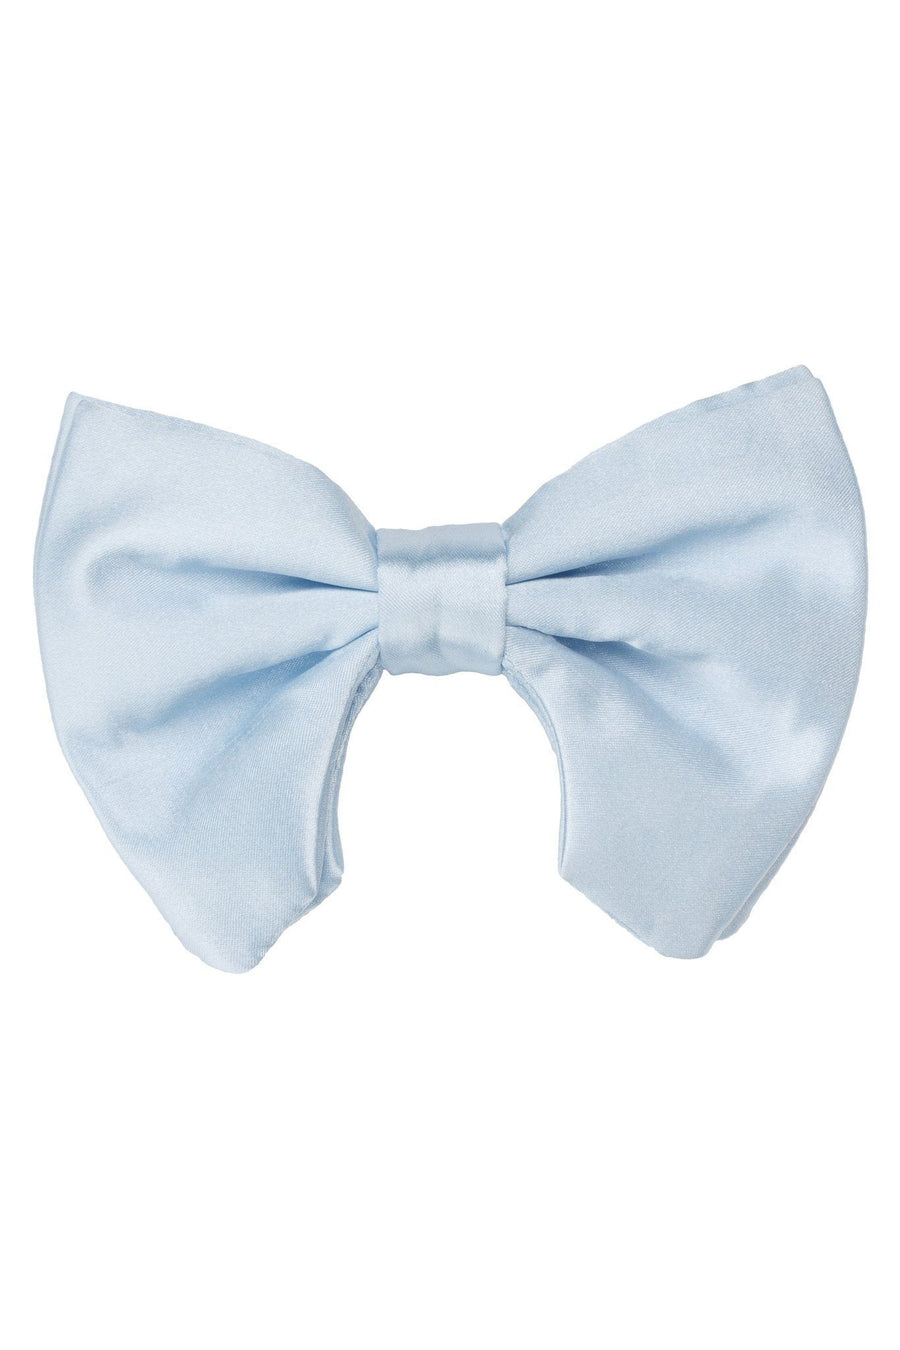 Avant Garde Bowtie - Light Blue Satin - PROJECT 6, modest fashion